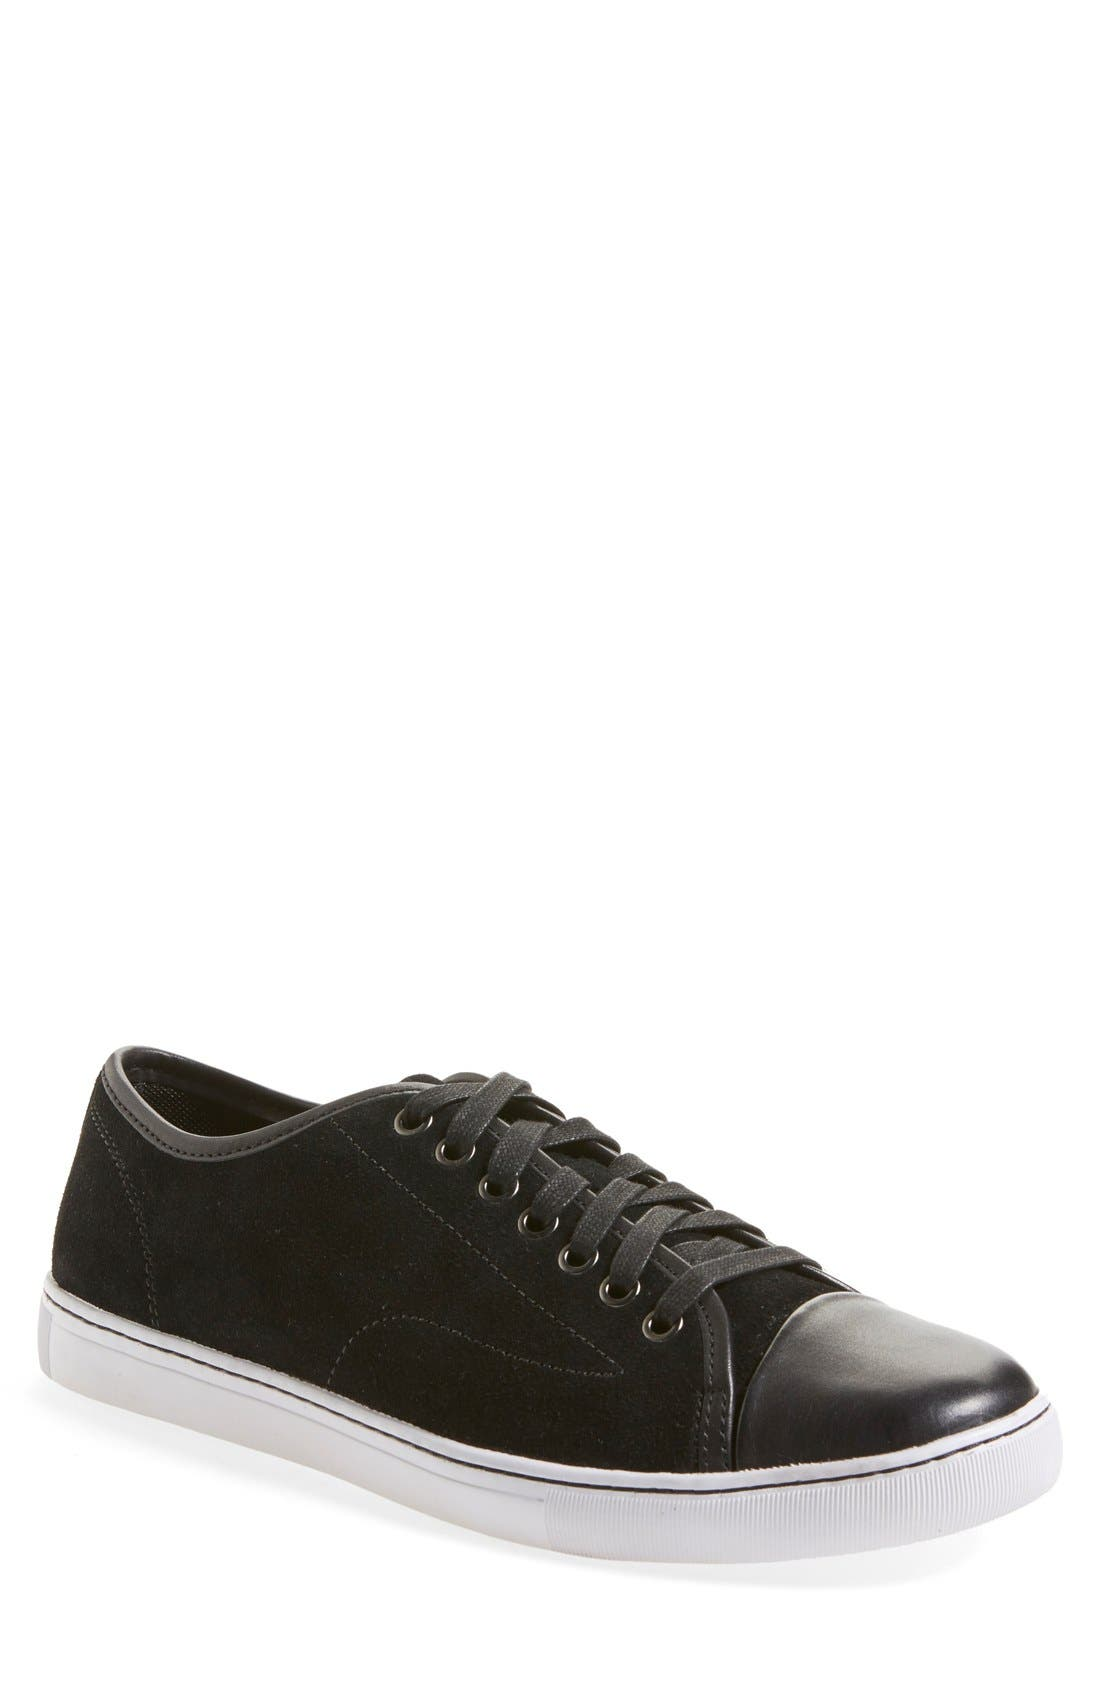 Main Image - The Rail 'Mateo' Sneaker (Men)